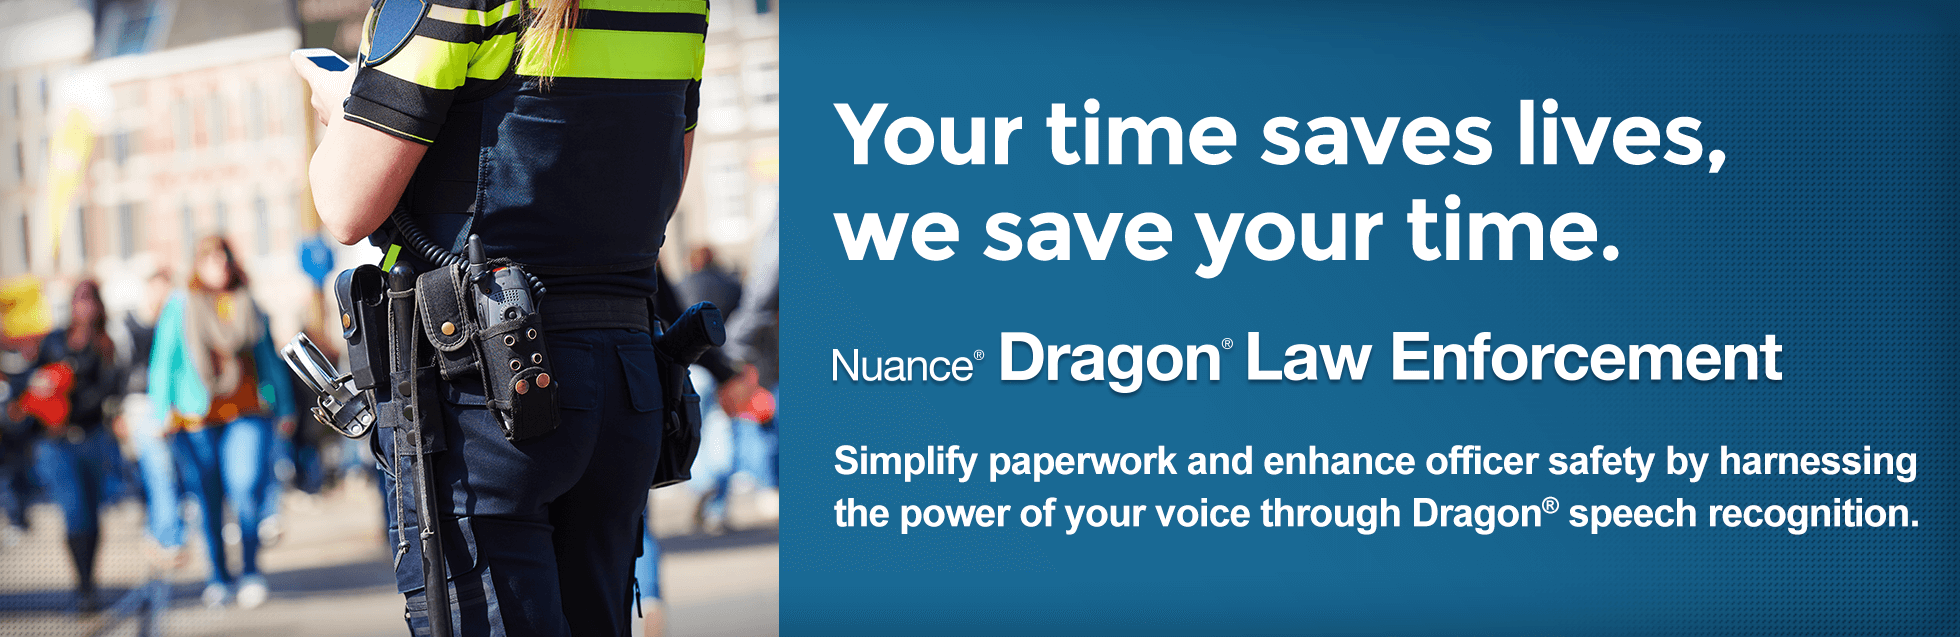 Your time saves lives, we save your time - Nuance Dragon Law Enforcement